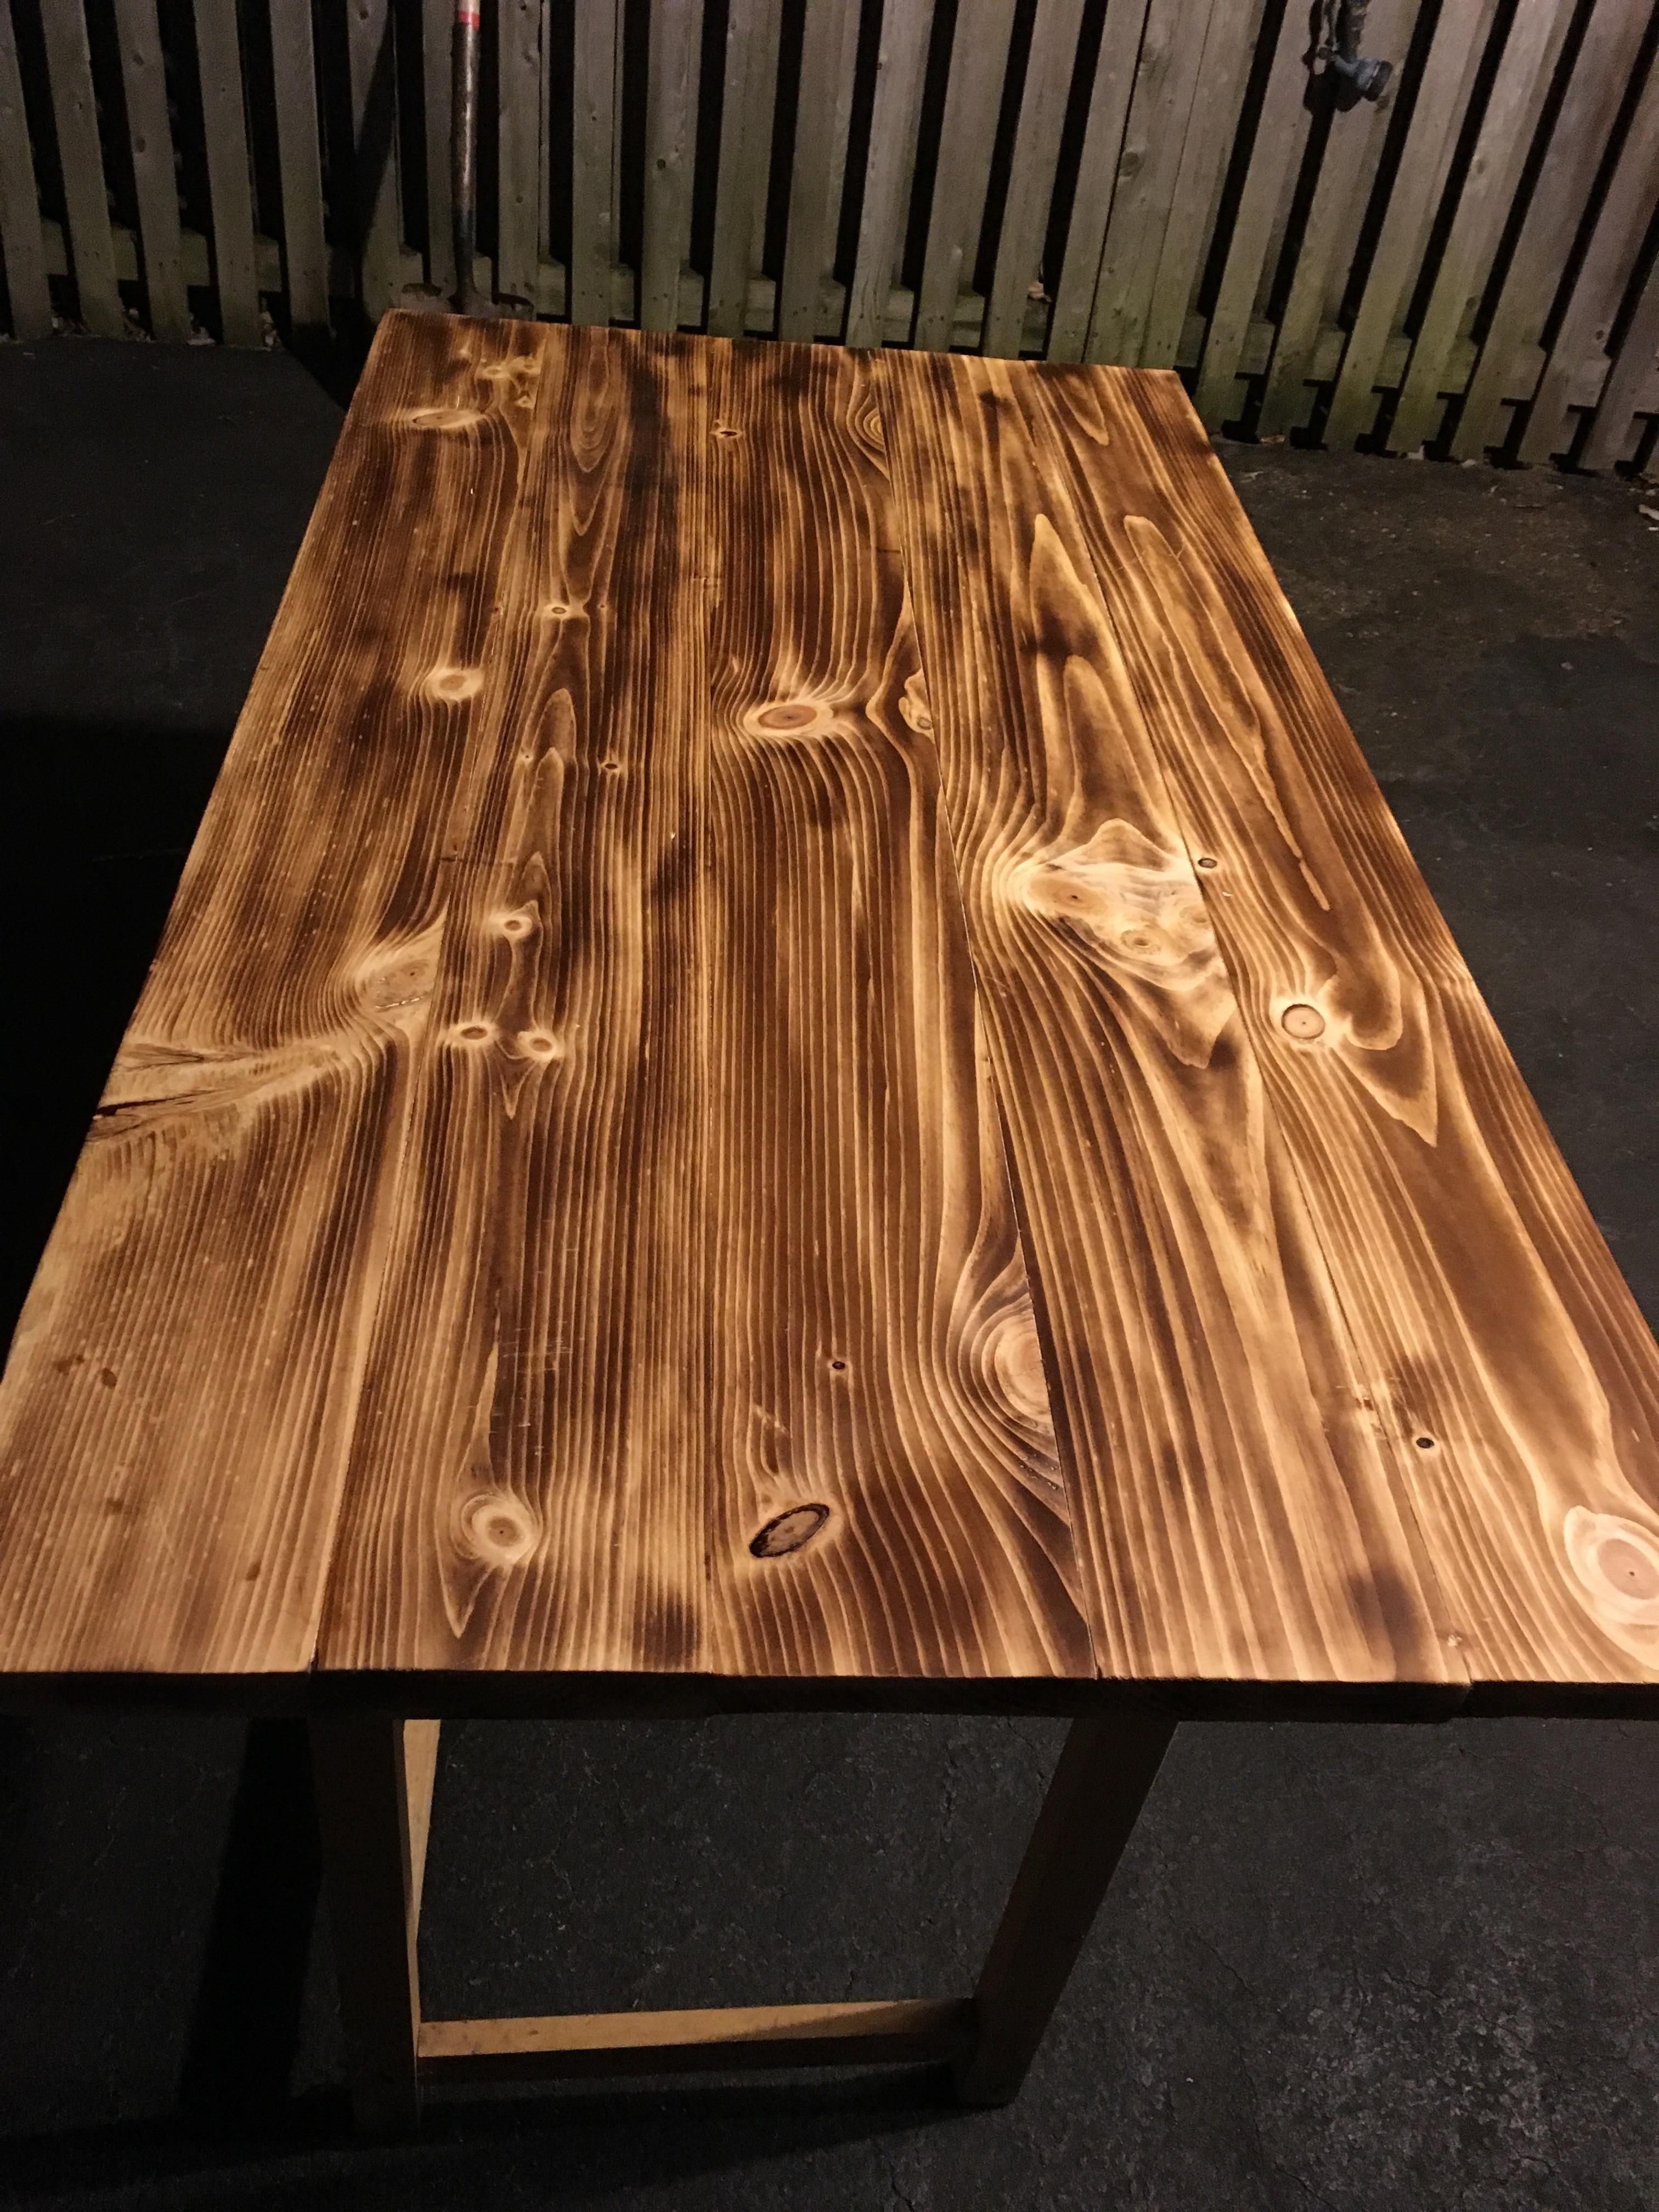 My Pine Wood Burnt Table Top Saw A Post On Here With The Burnt